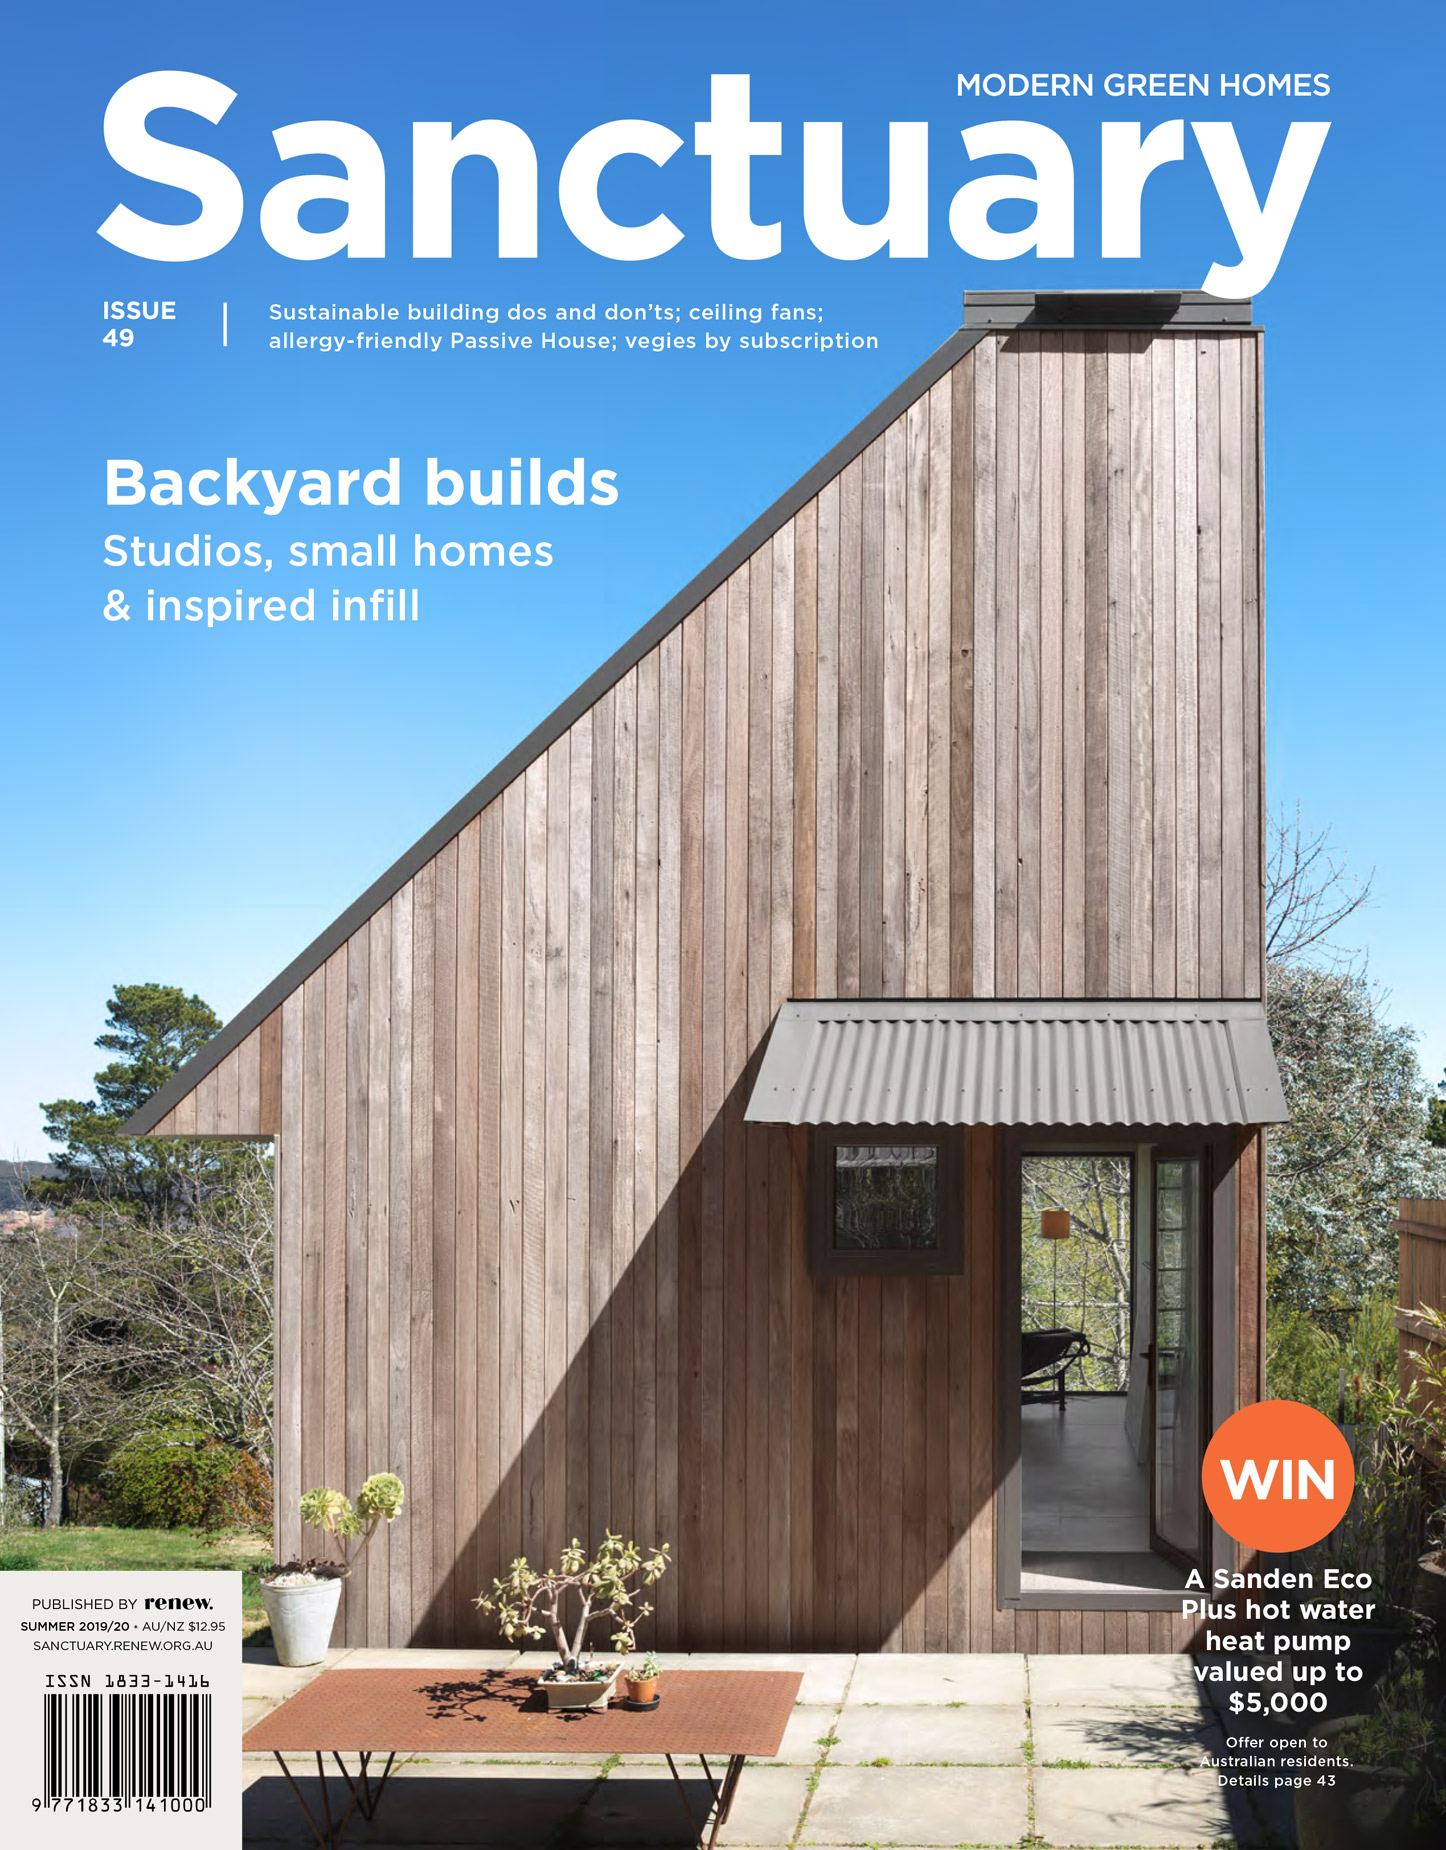 1b_luke_butterly_sanctuary_magazine_king_designb